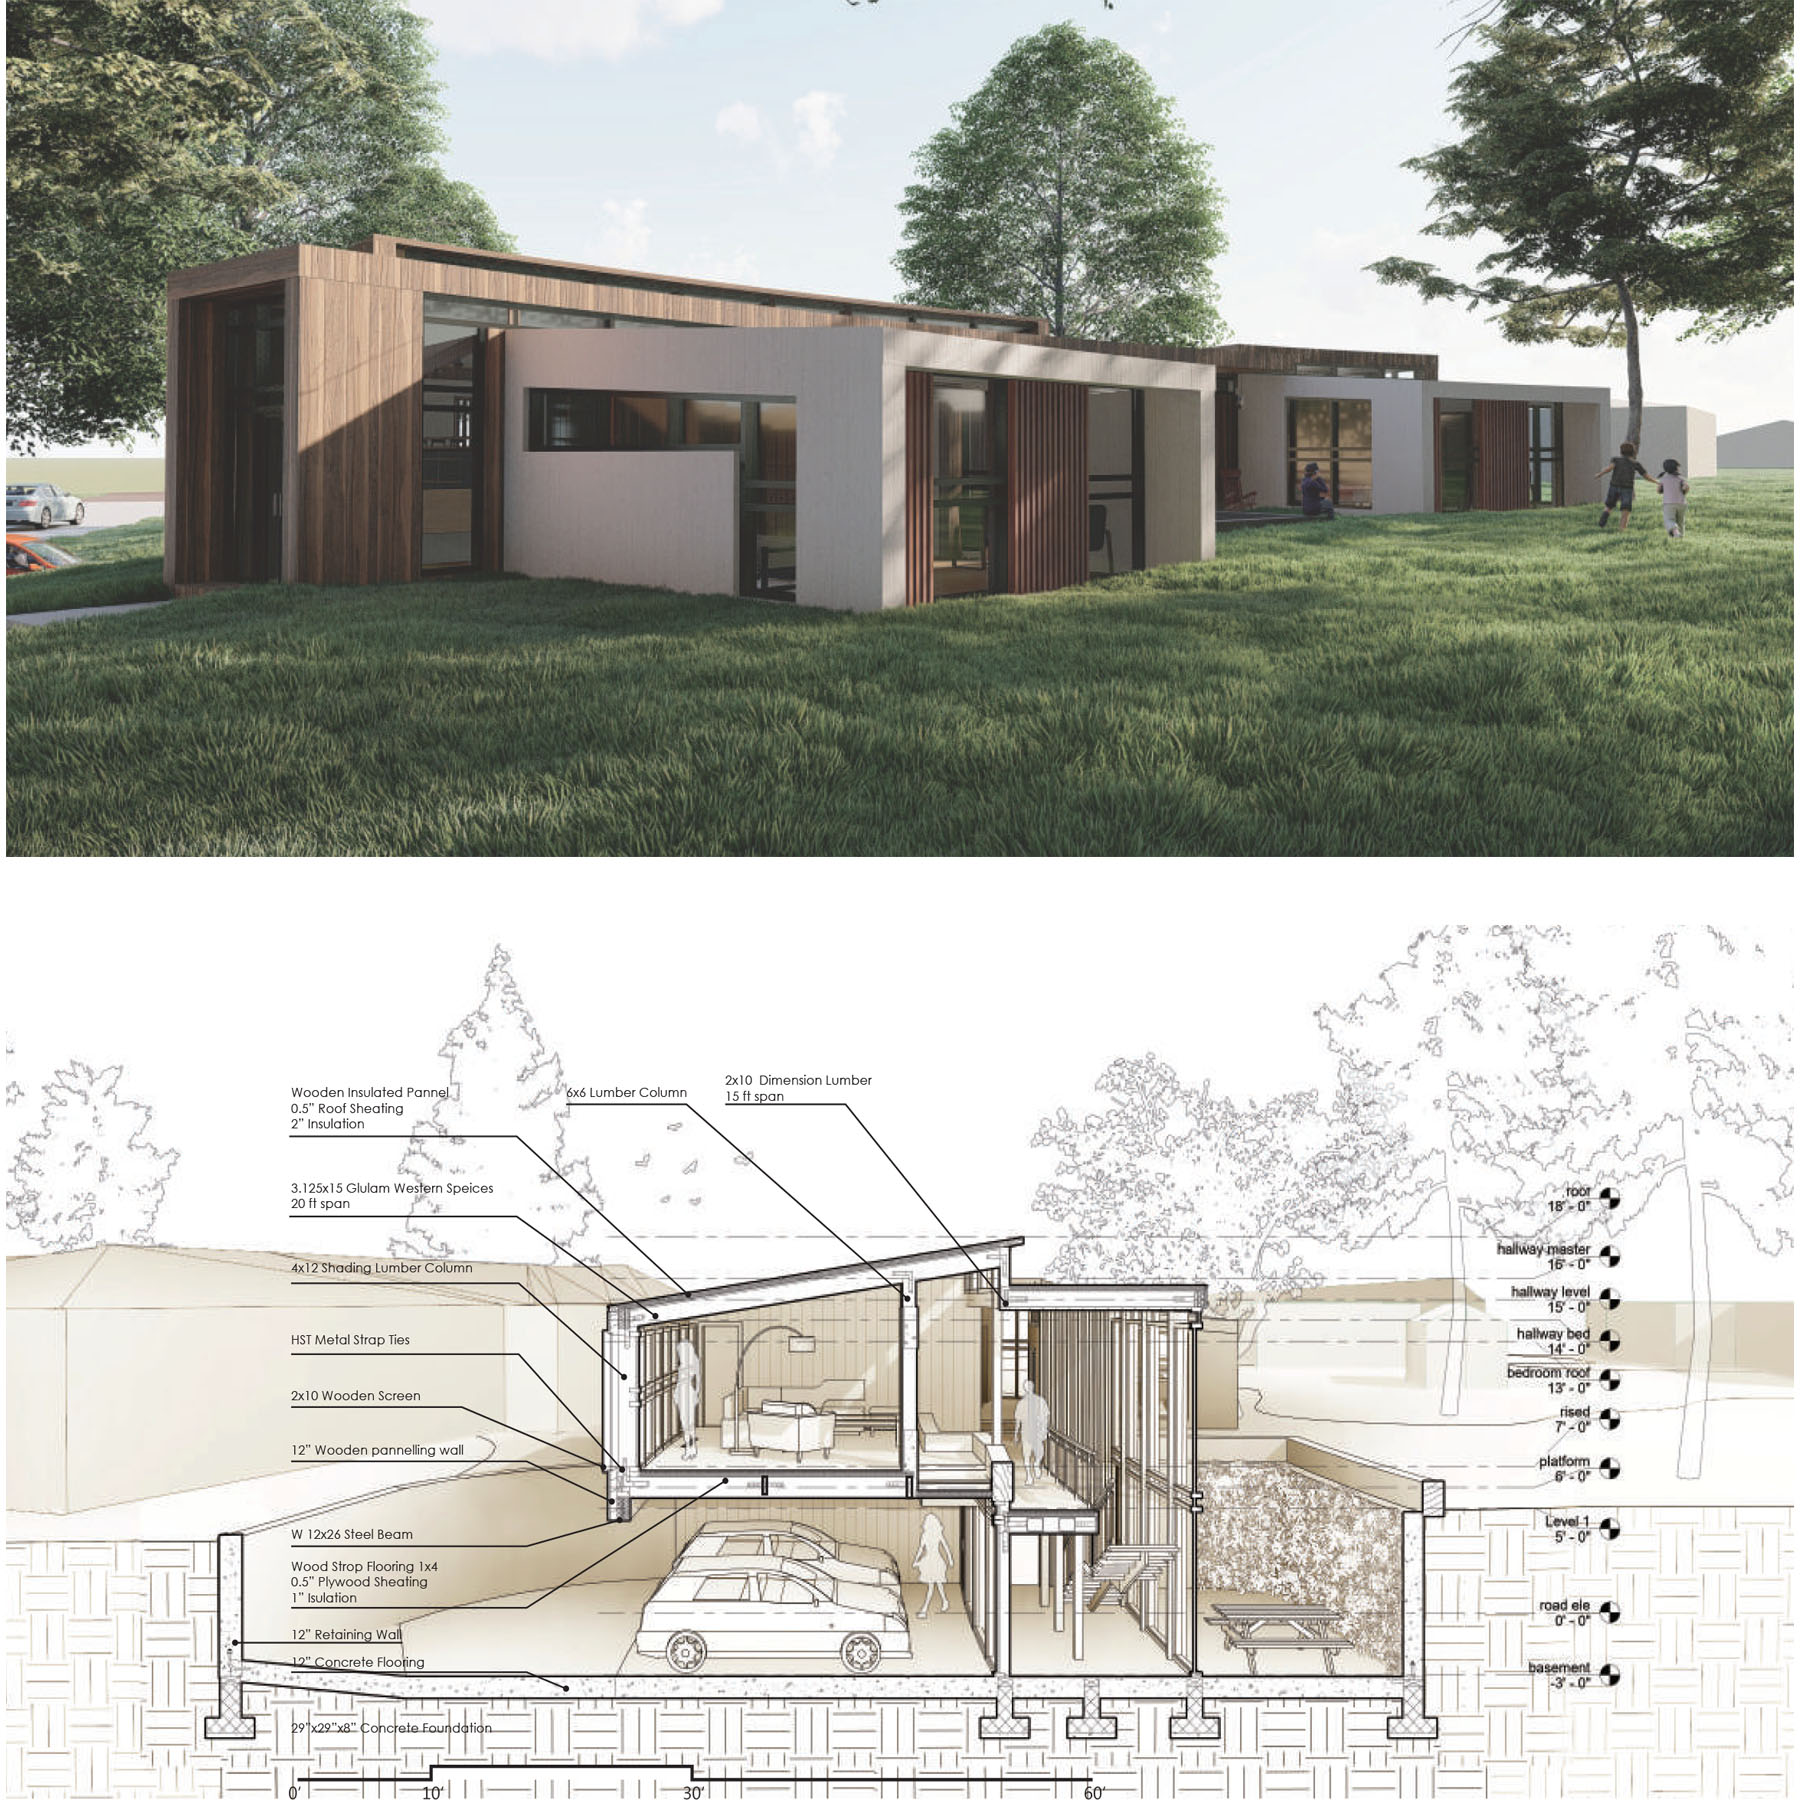 Rendering and section perspective of residential design proposal